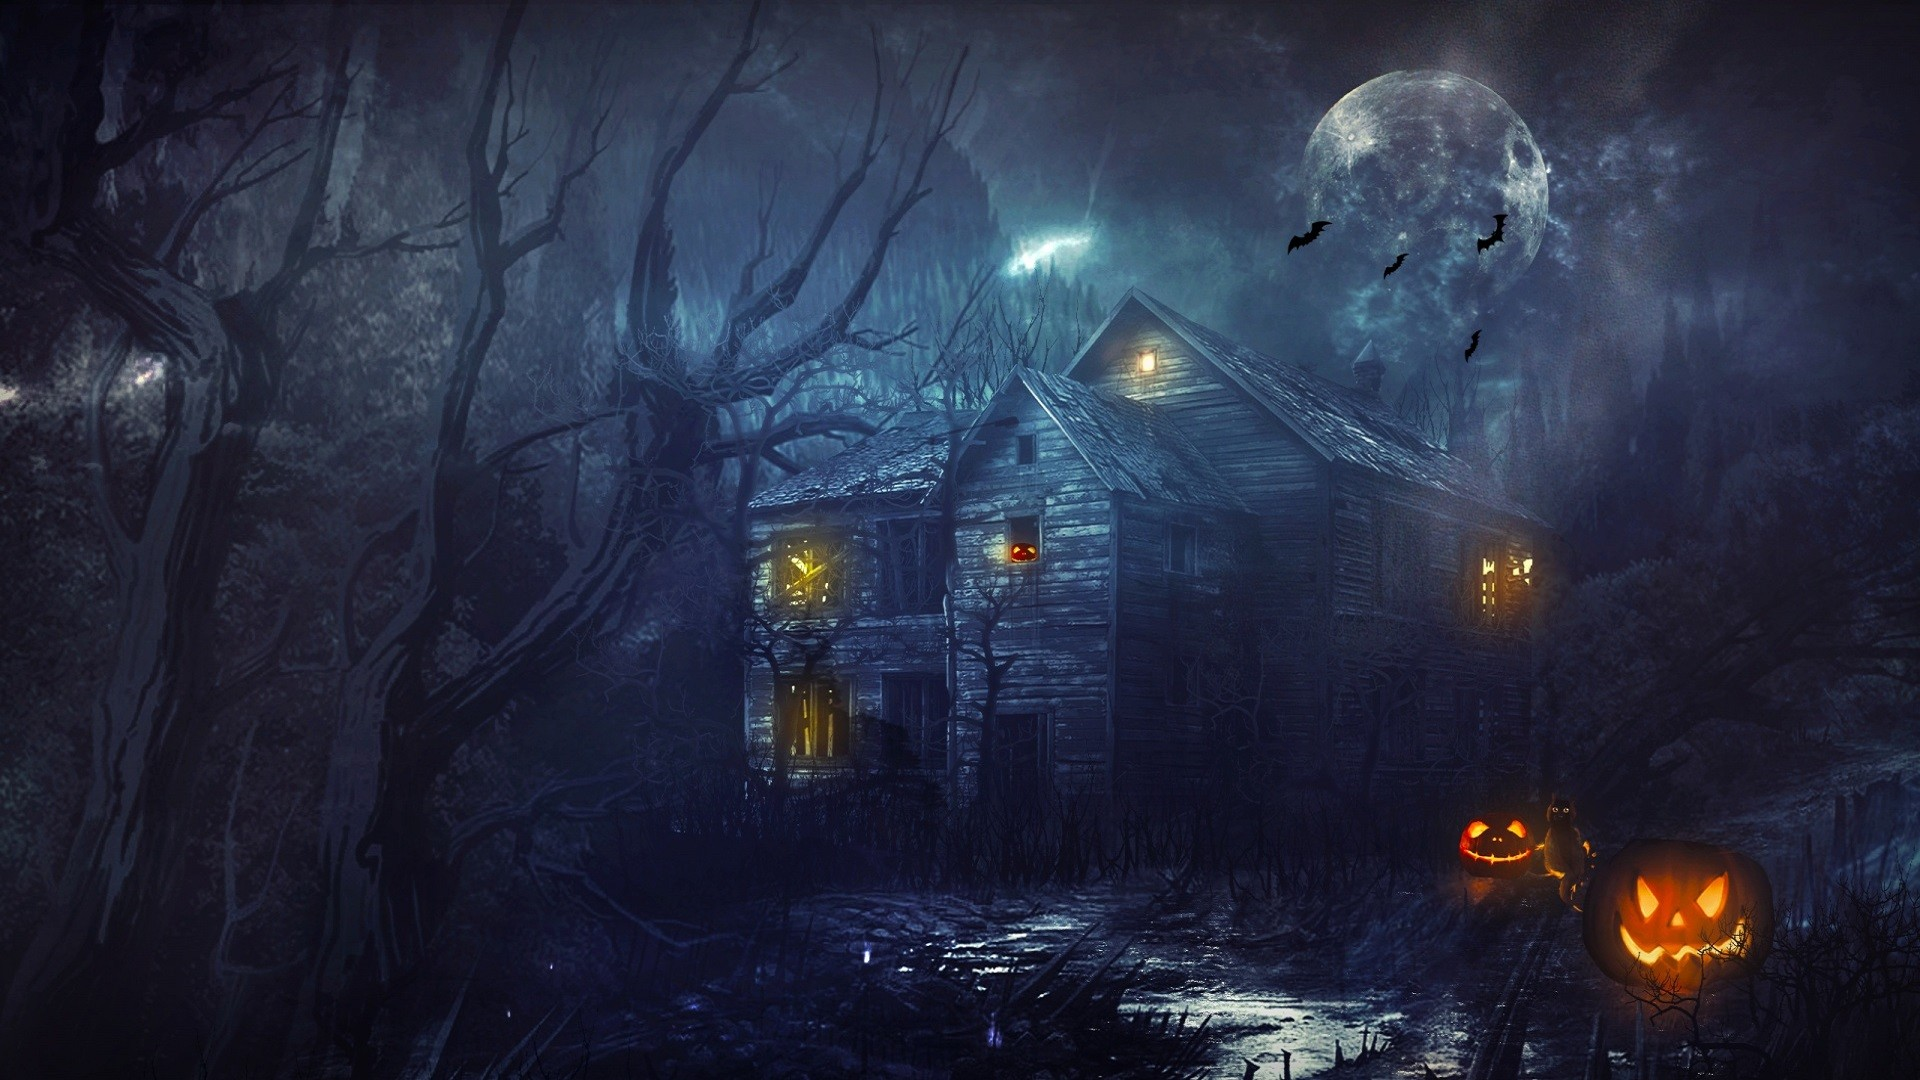 Halloween Computer Wallpapers 61 images 1920x1080